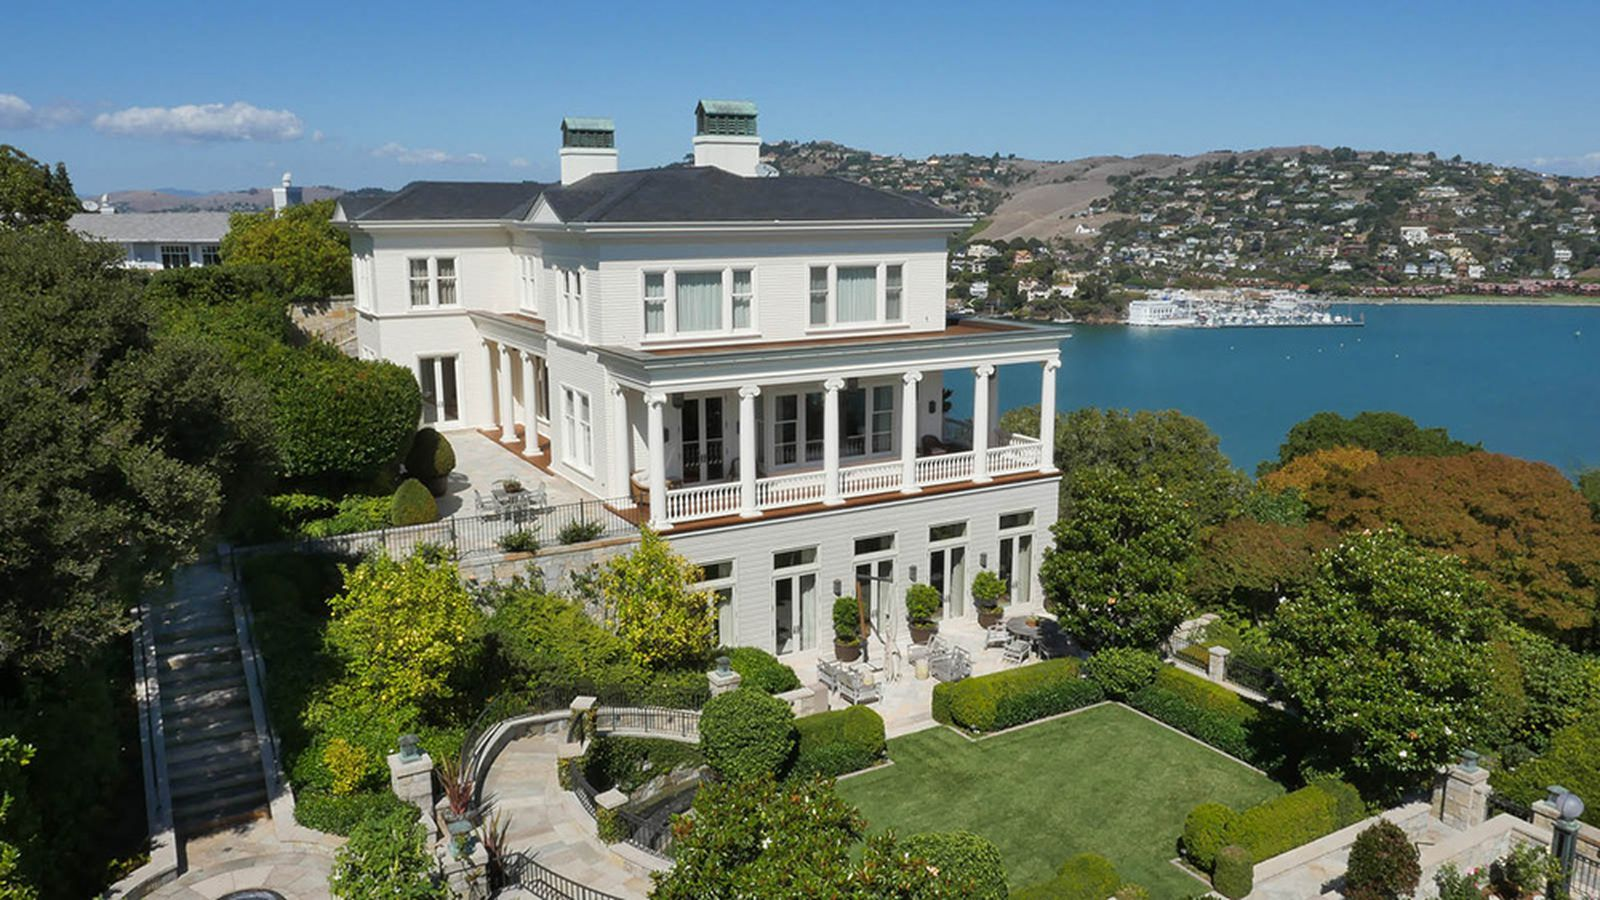 Exclusive locksley hall in belvedere sells for 47 5m for Expensive homes for sale in california